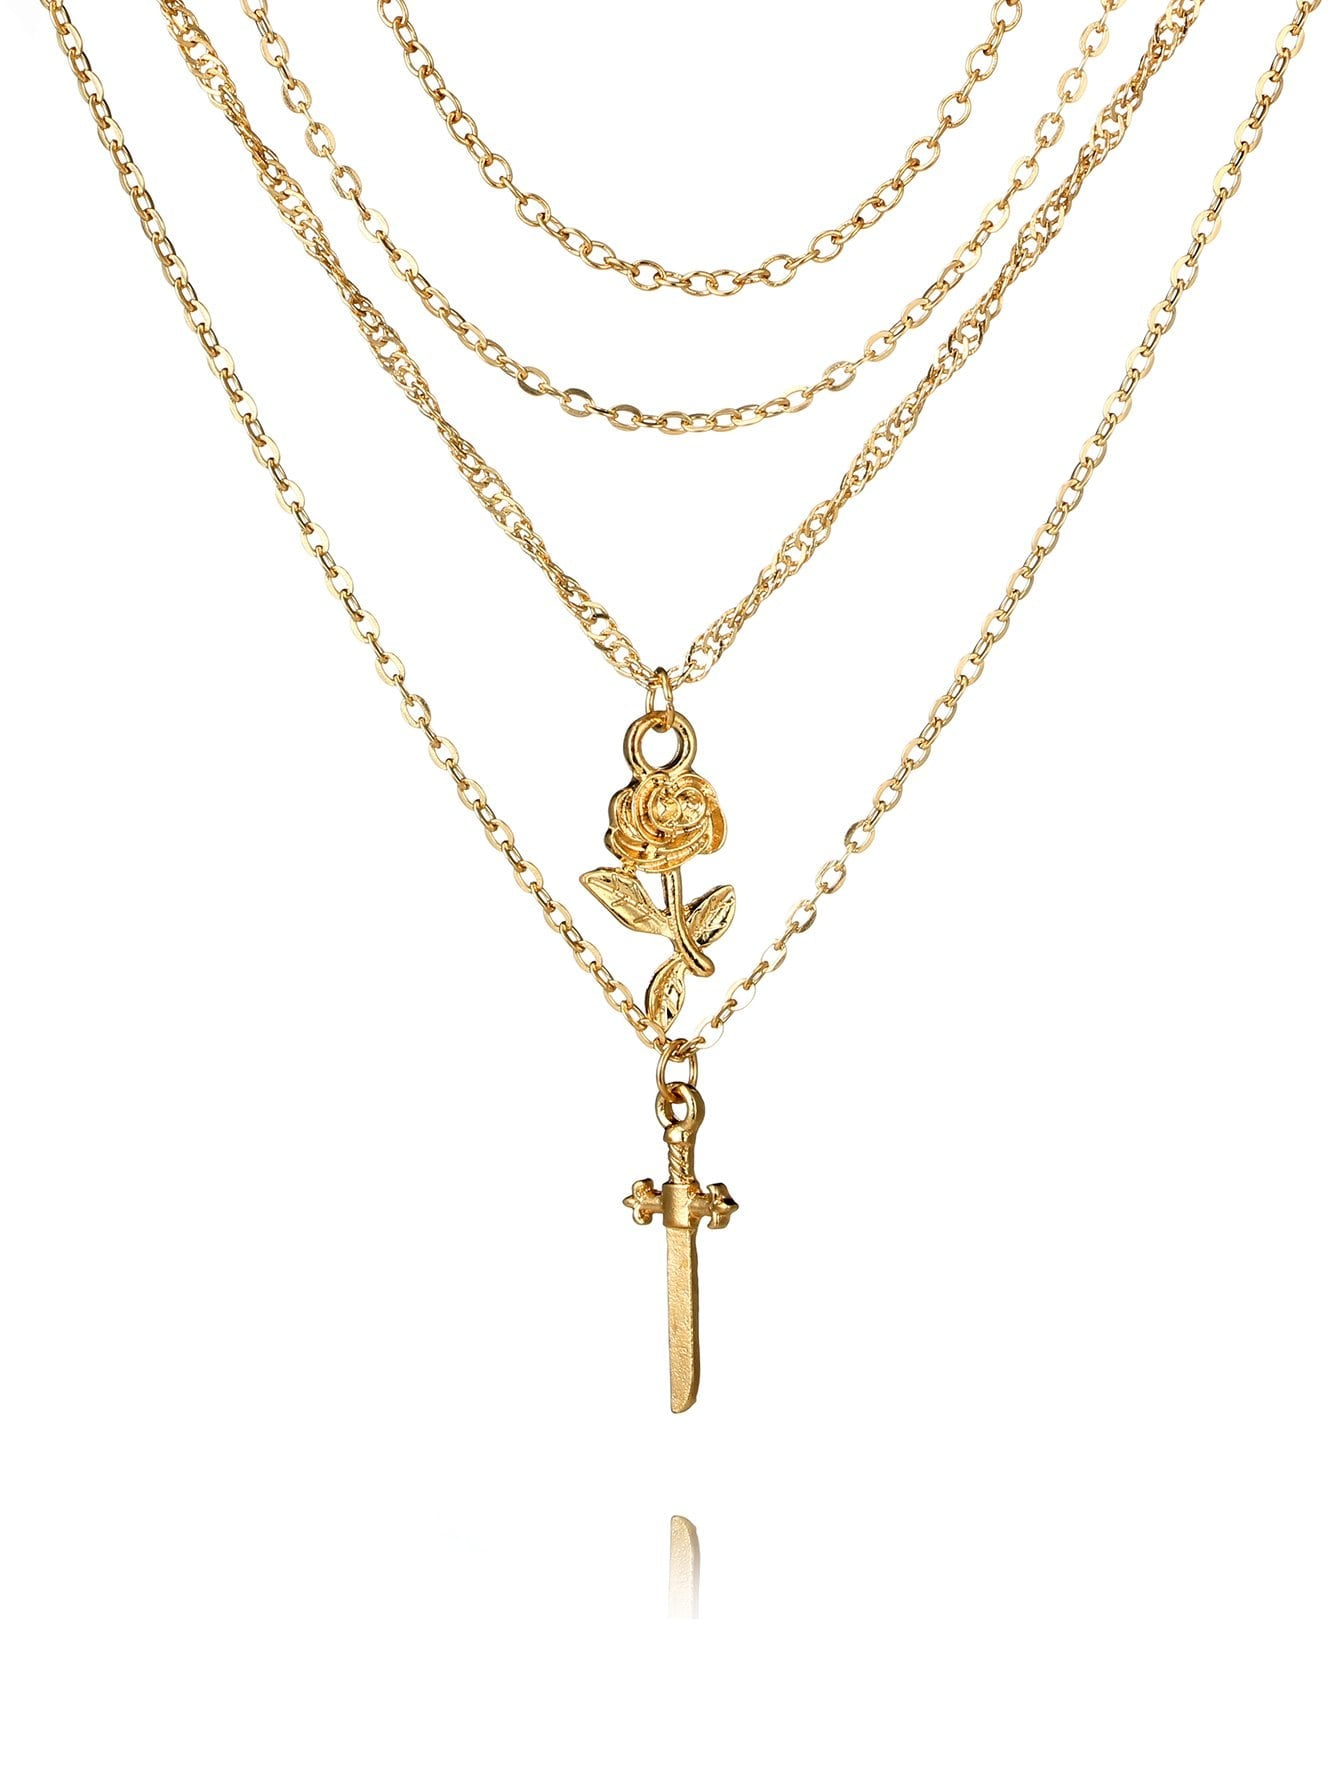 Women's Gold Cross Pendant Layered Chain Necklace